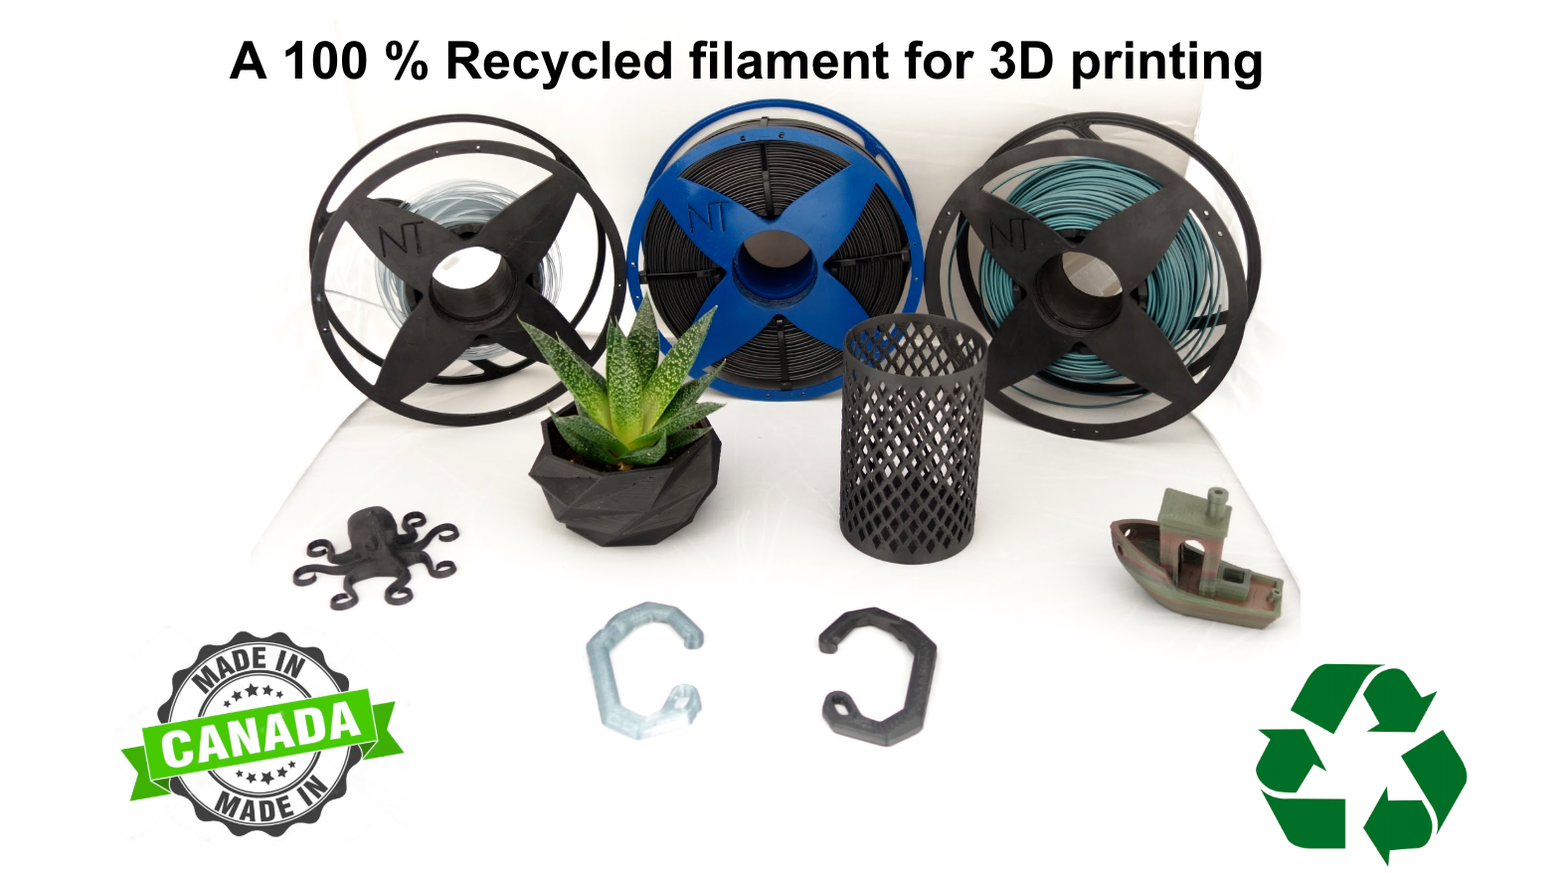 Filaments coming from recycled sources, offering good performances and easy to print .